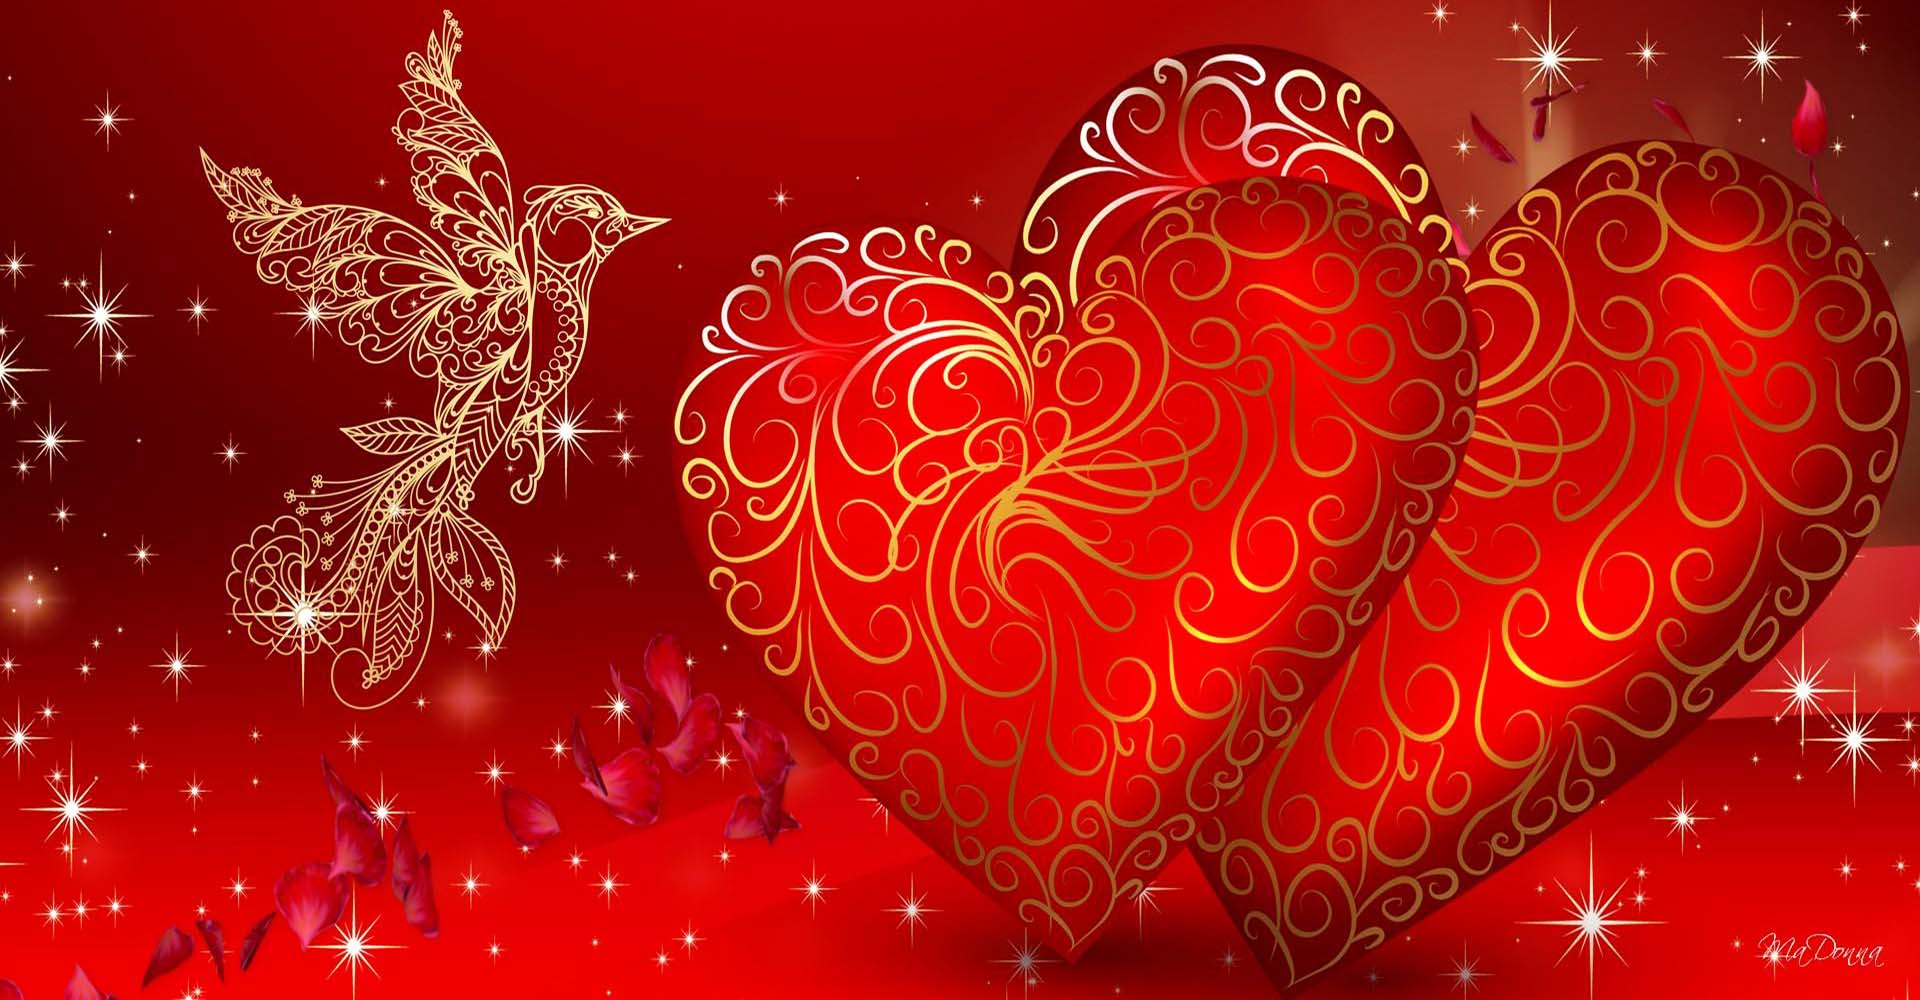 Love You Wallpaper Full Hd : Love Heart Wallpapers 2016 - Wallpaper cave